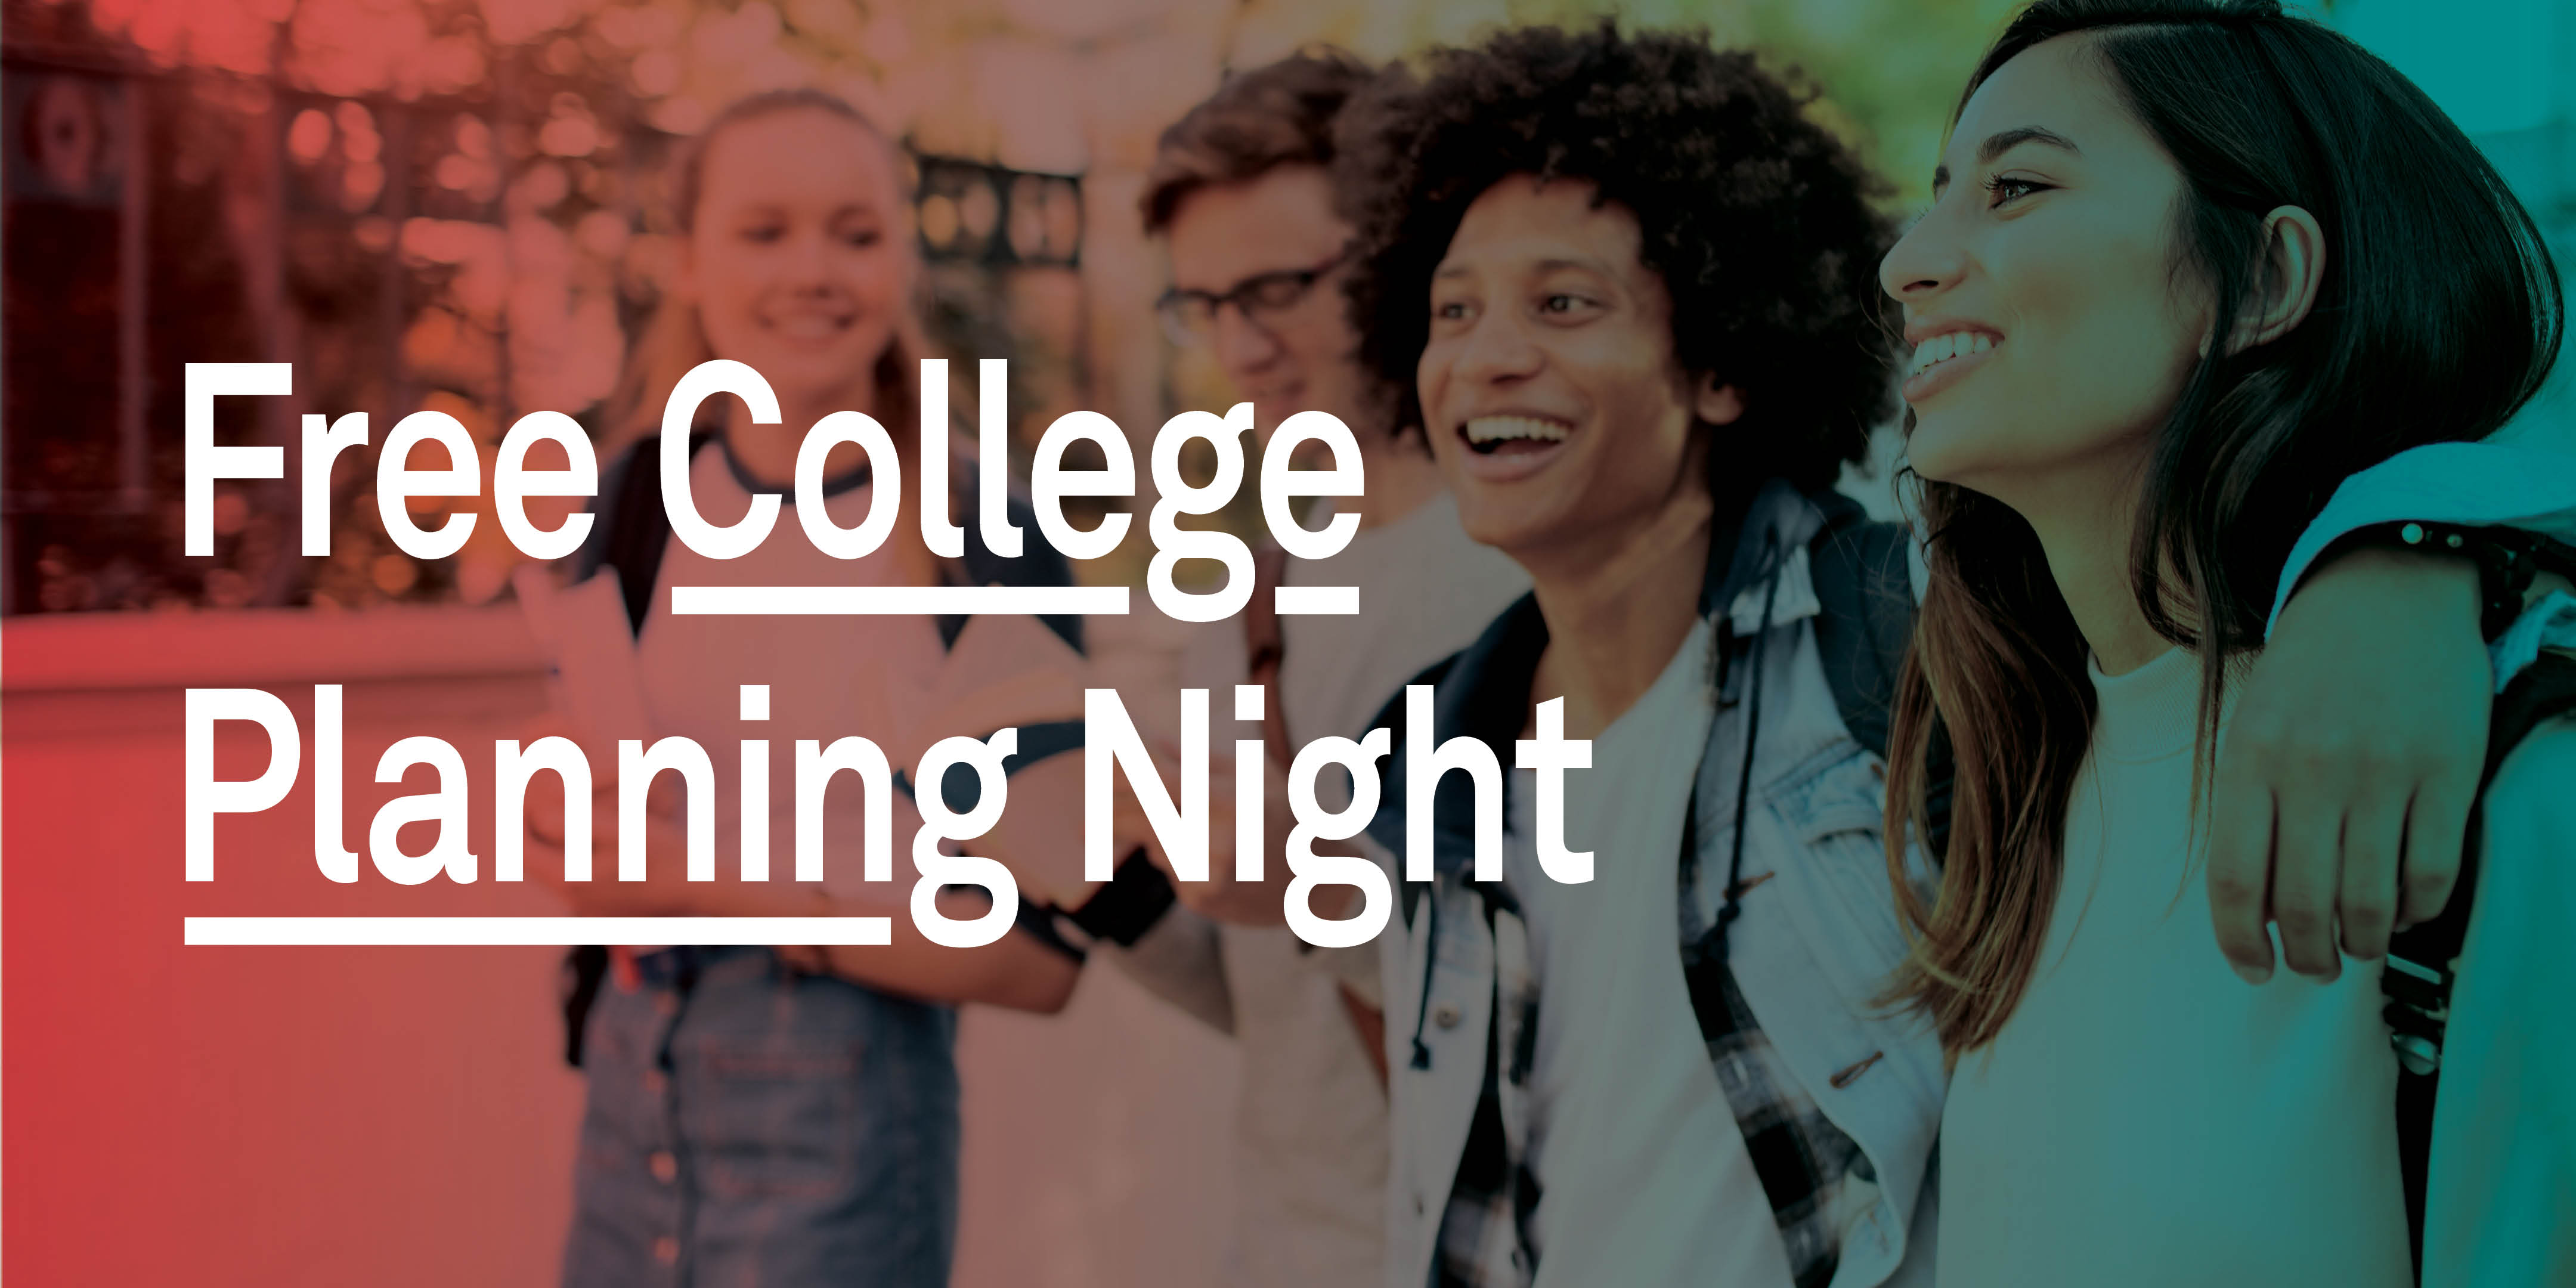 image link to Free College Planning Night on EventBrite